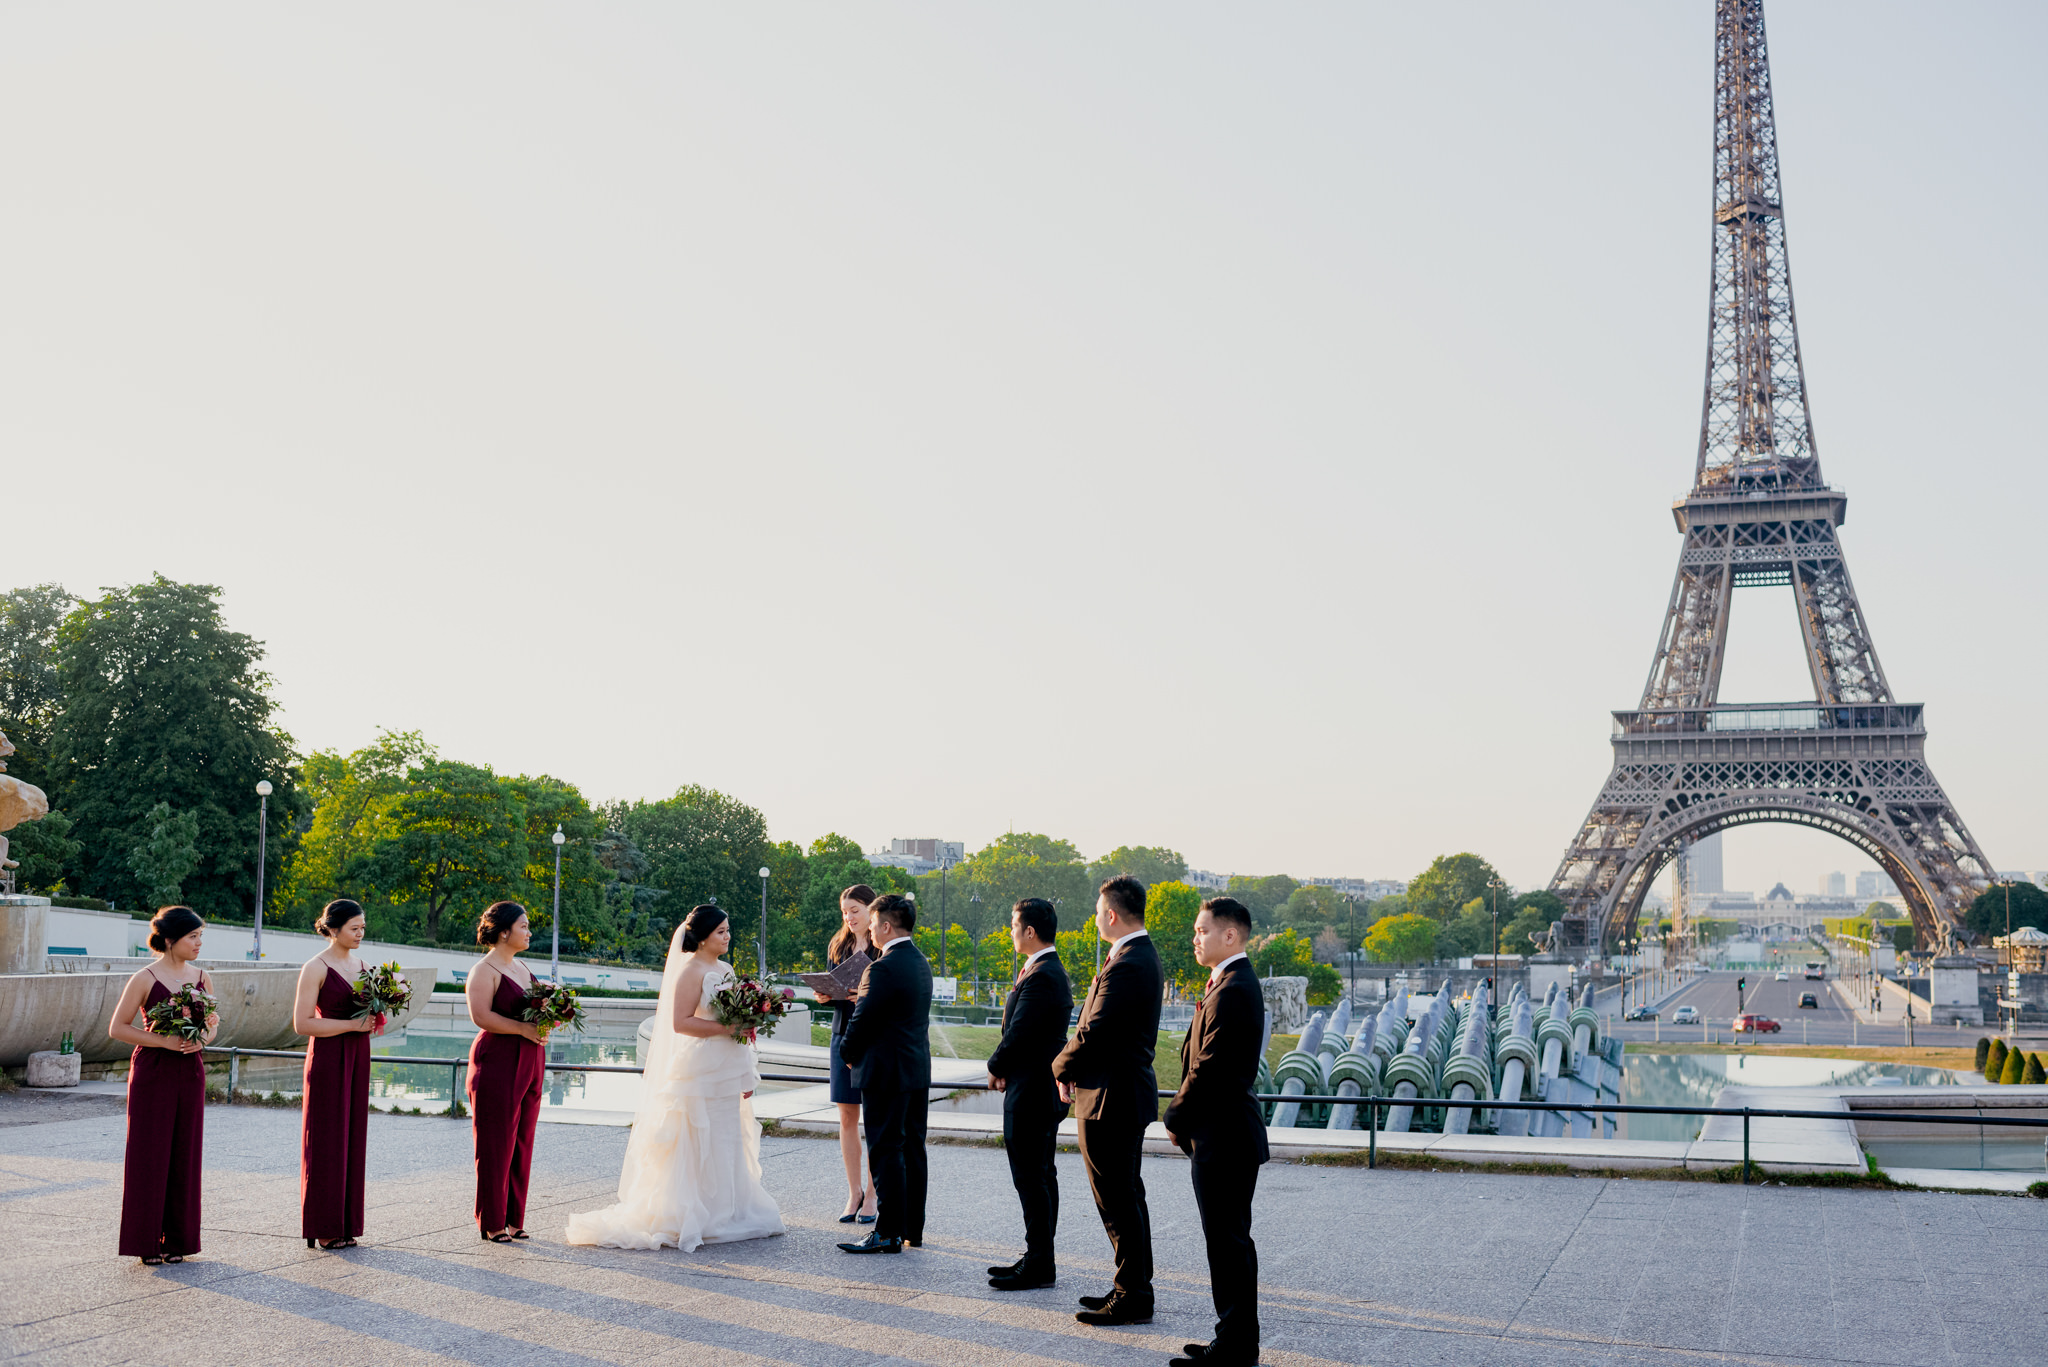 A bridal party lines up for a wedding with the Eiffel Tower in the background.